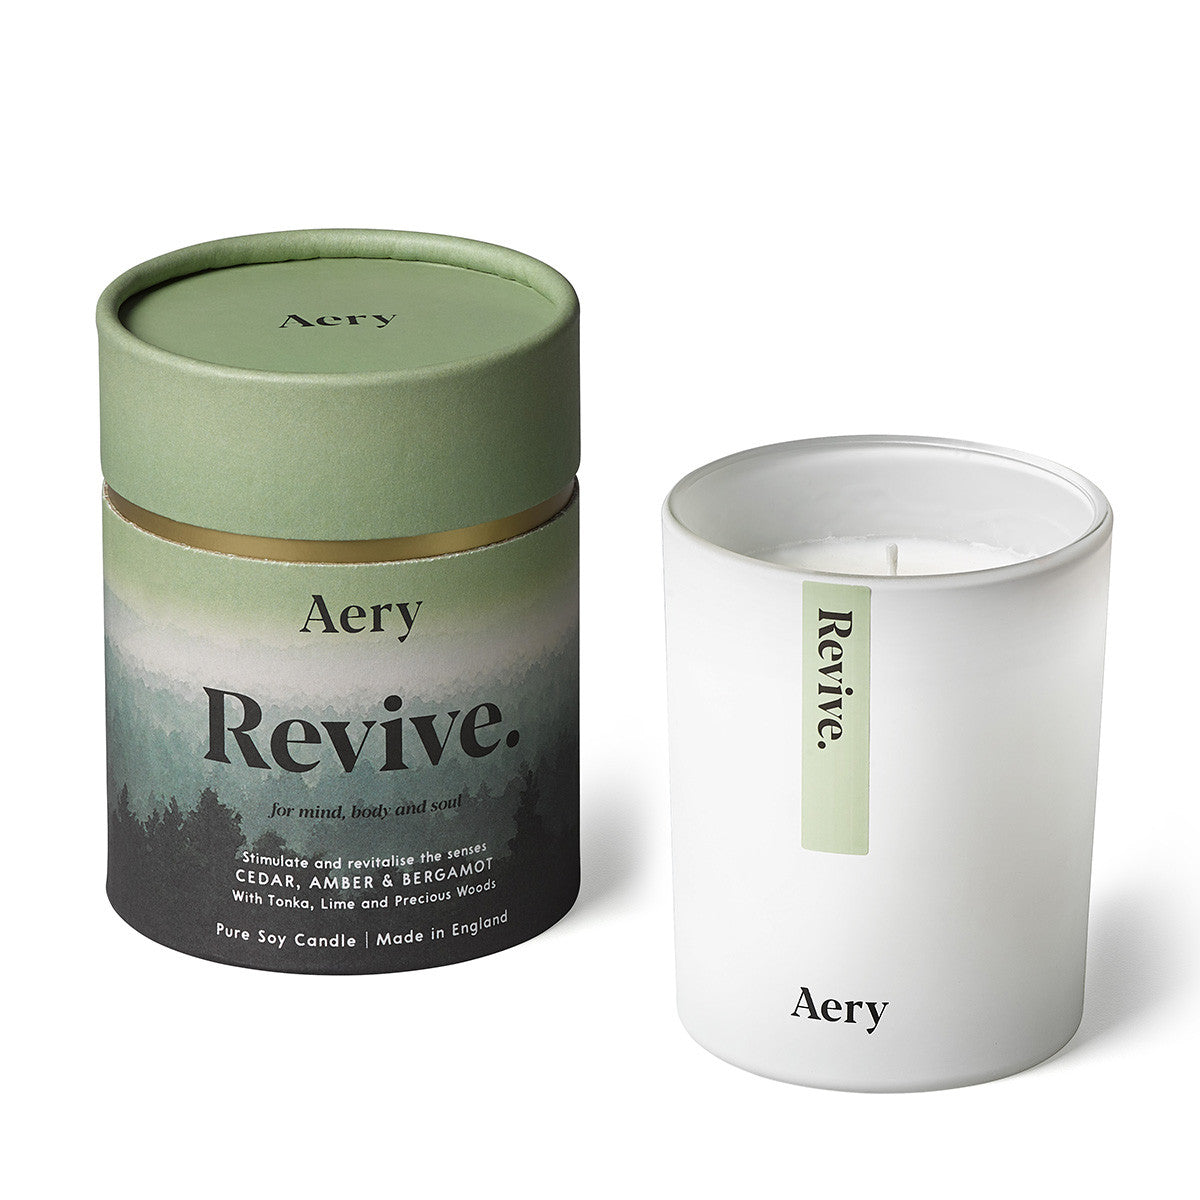 Aery Revive Mindful Candle